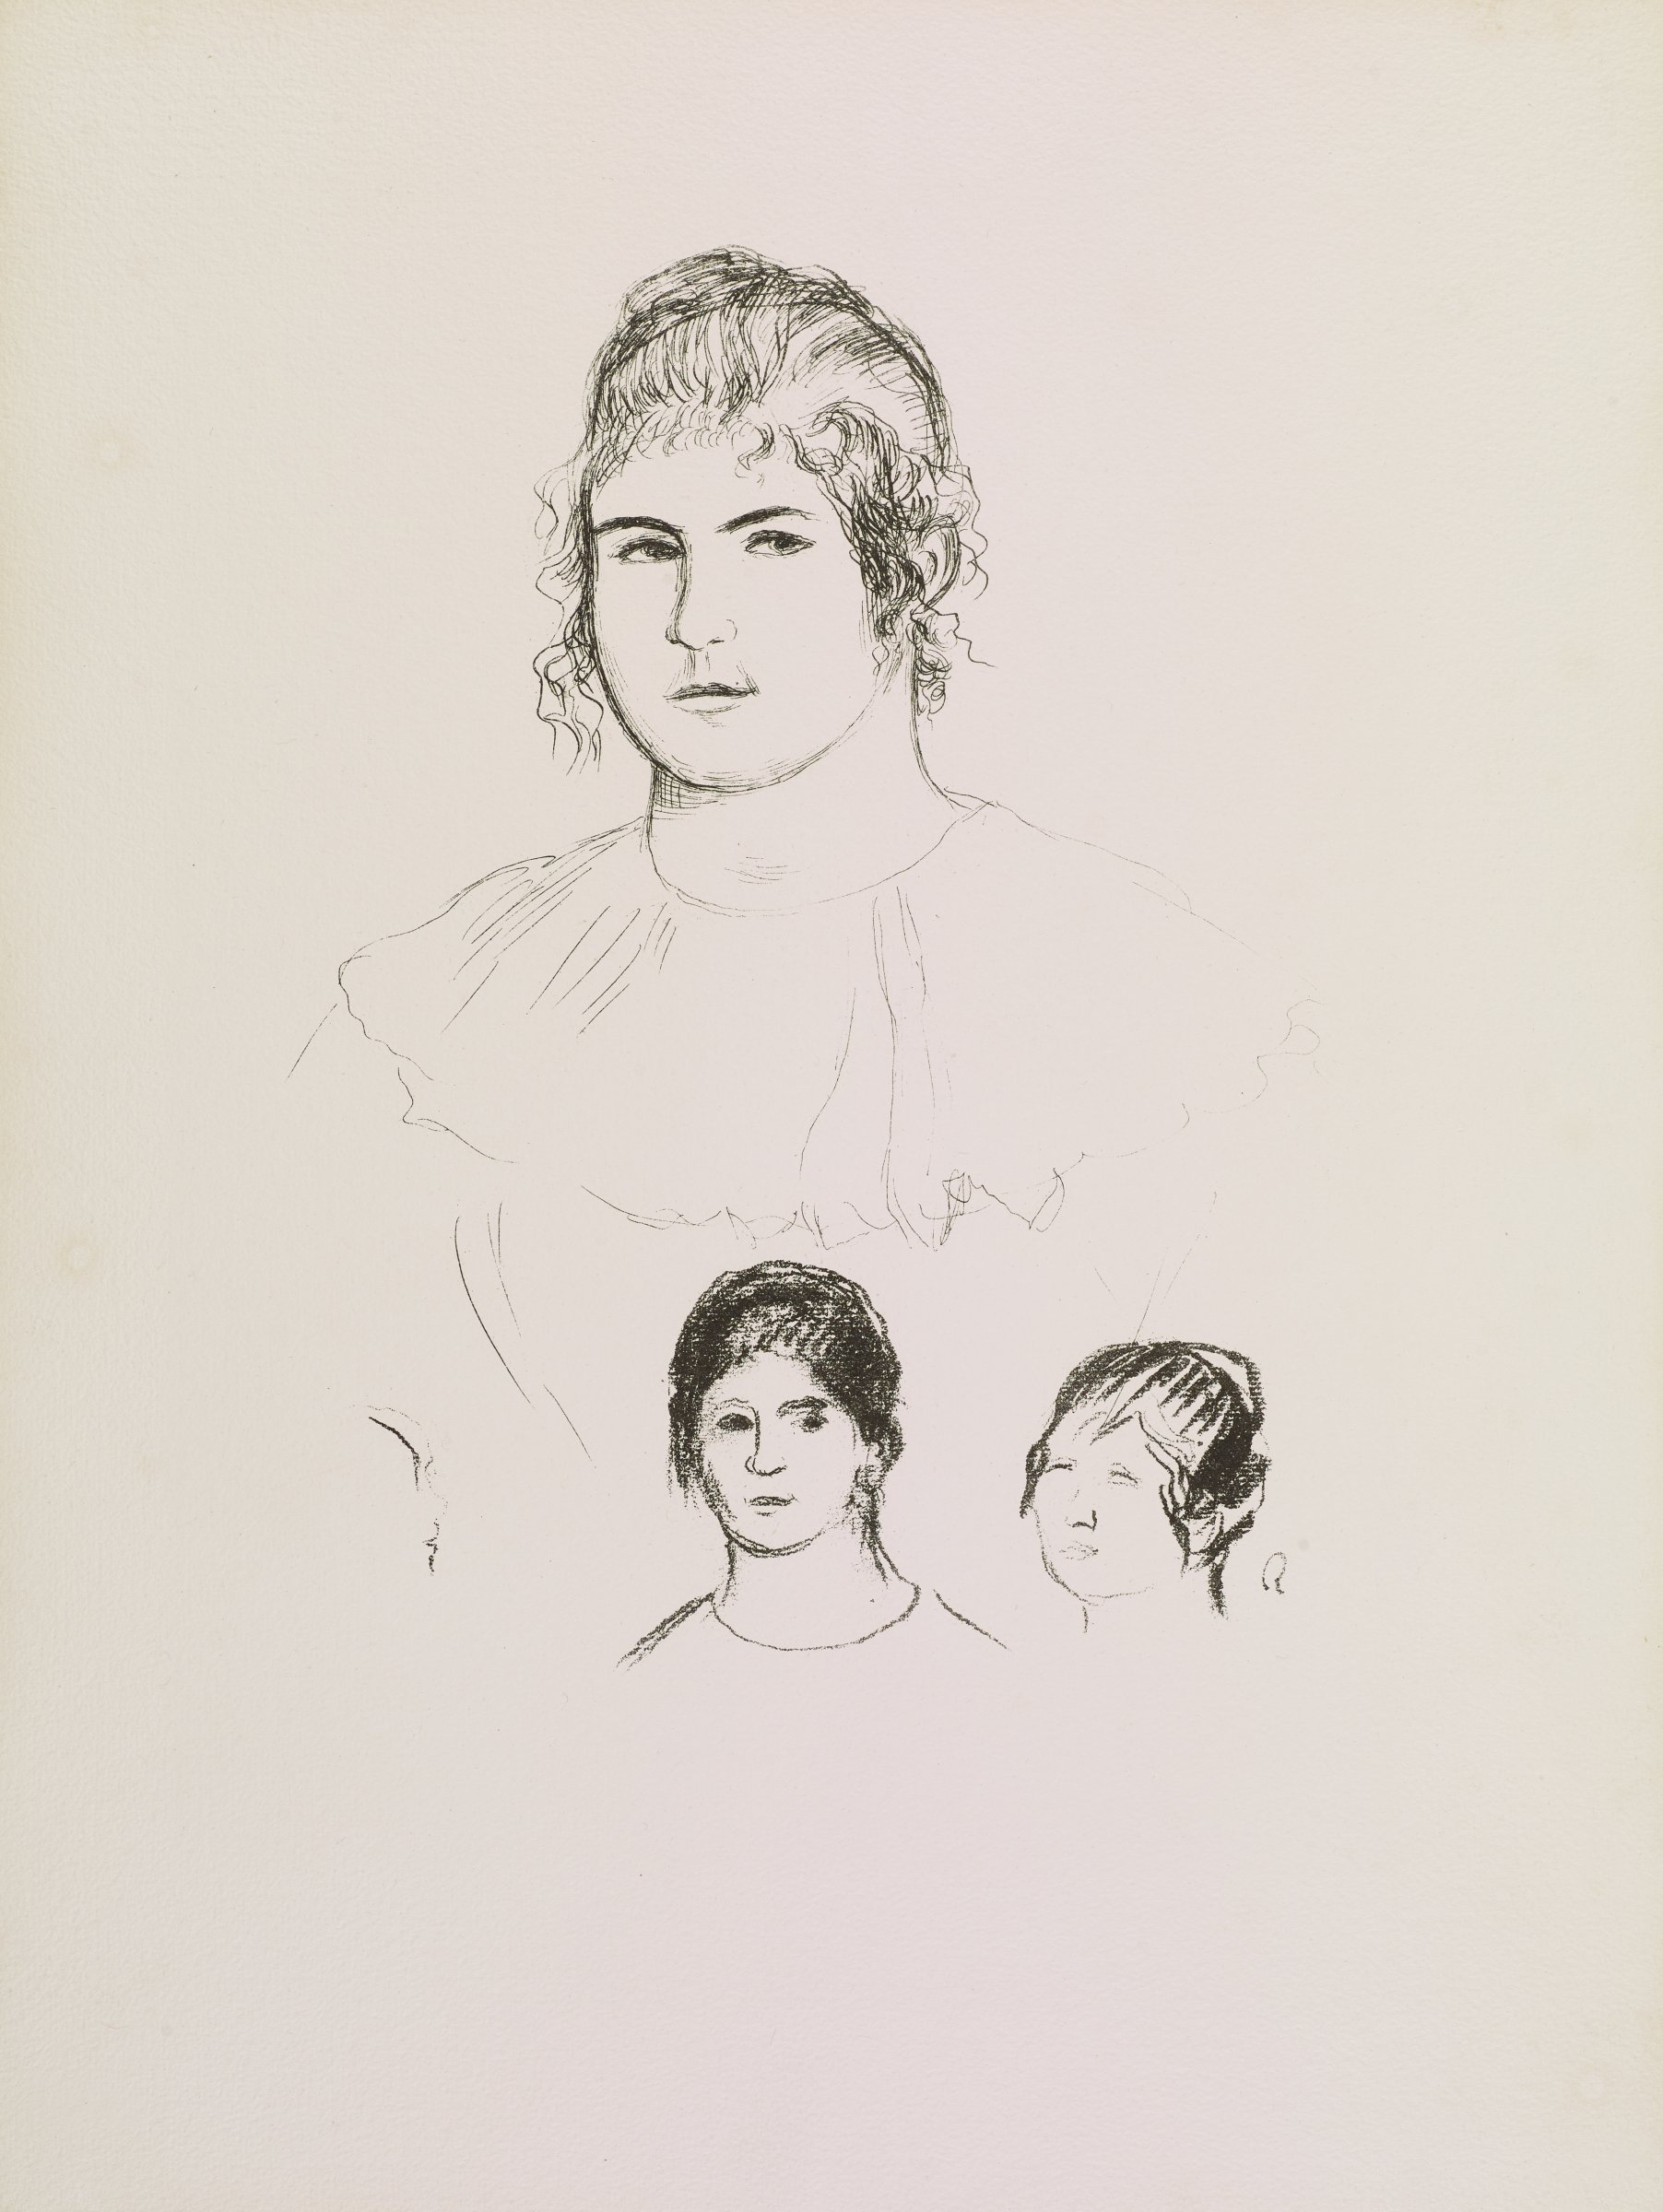 Three sketch bust portraits of Gabrielle Renard (1878-1959), Renoir's long time maid. The largest portrait is positioned on top, where her face is detailed and her dress is outlined.